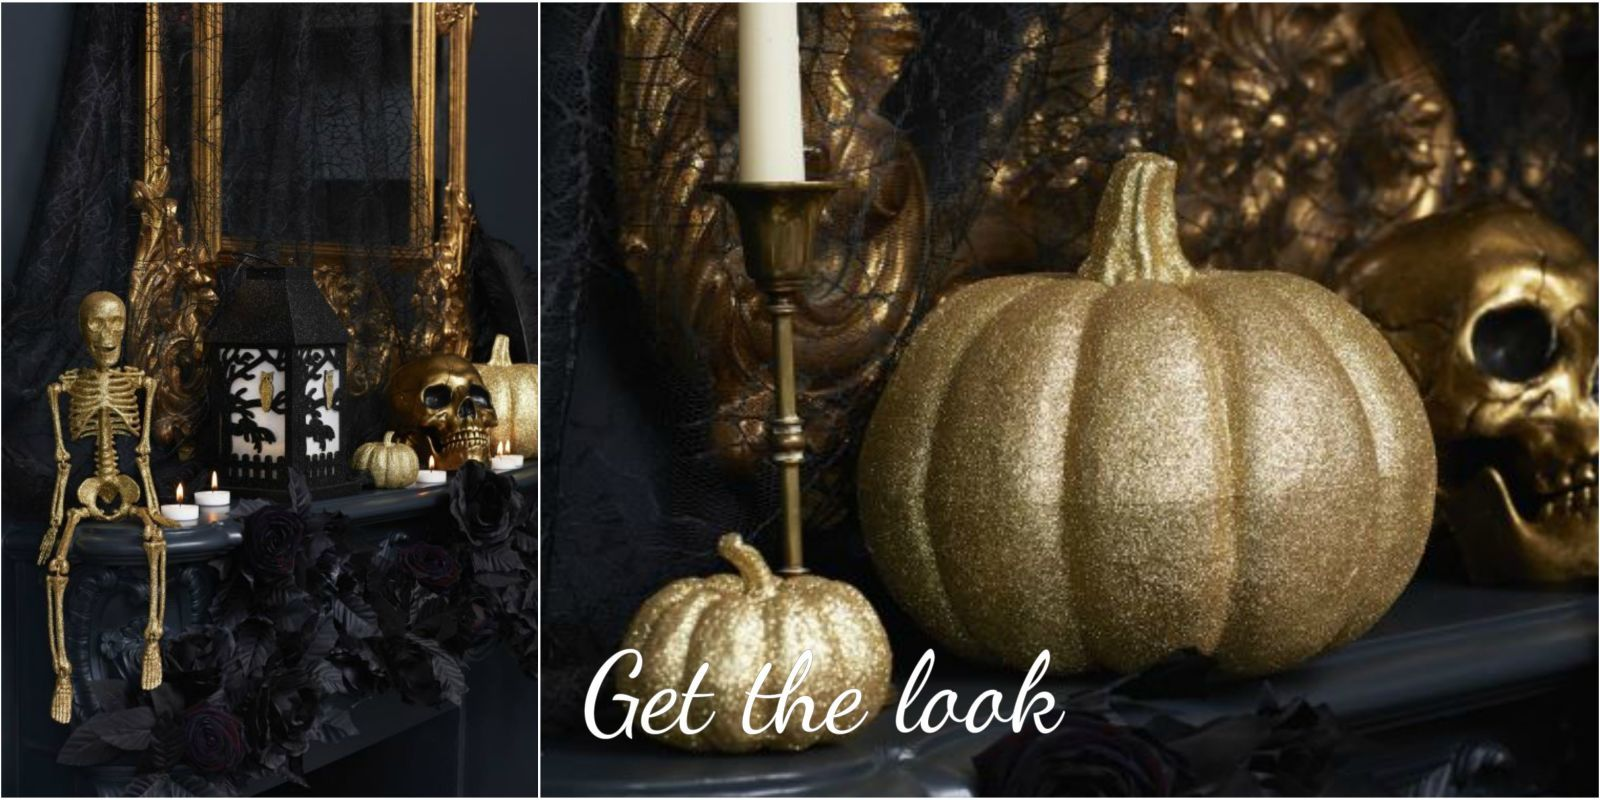 How to create a spooky yet glamorous Halloween hallway